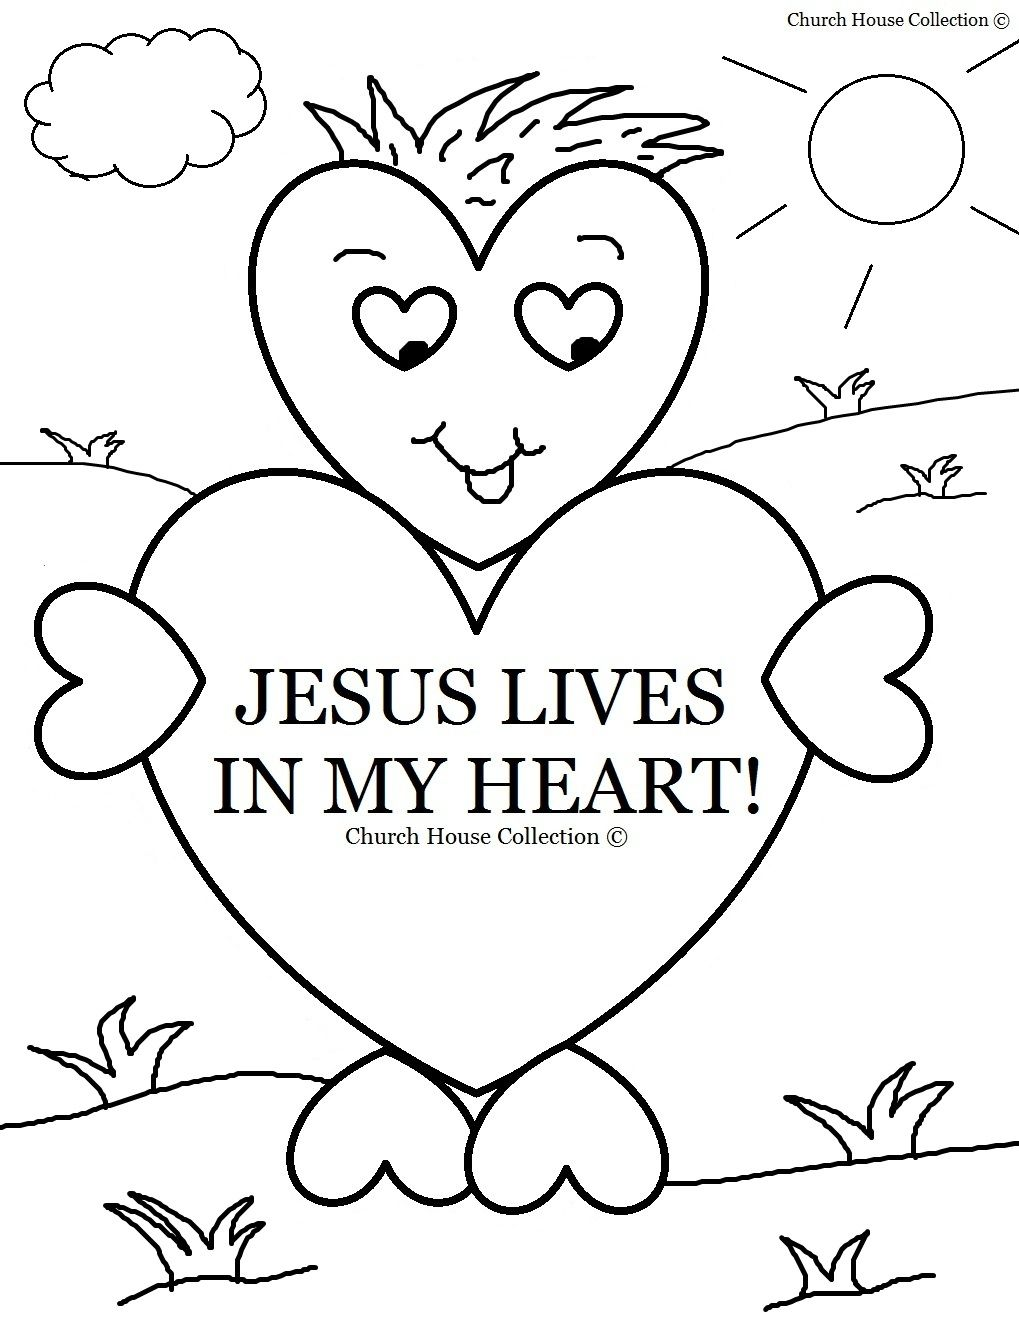 sunday school coloring lives in my heart for sunda valentines glue painting on cardstock coloring pages Sunday School Coloring Page